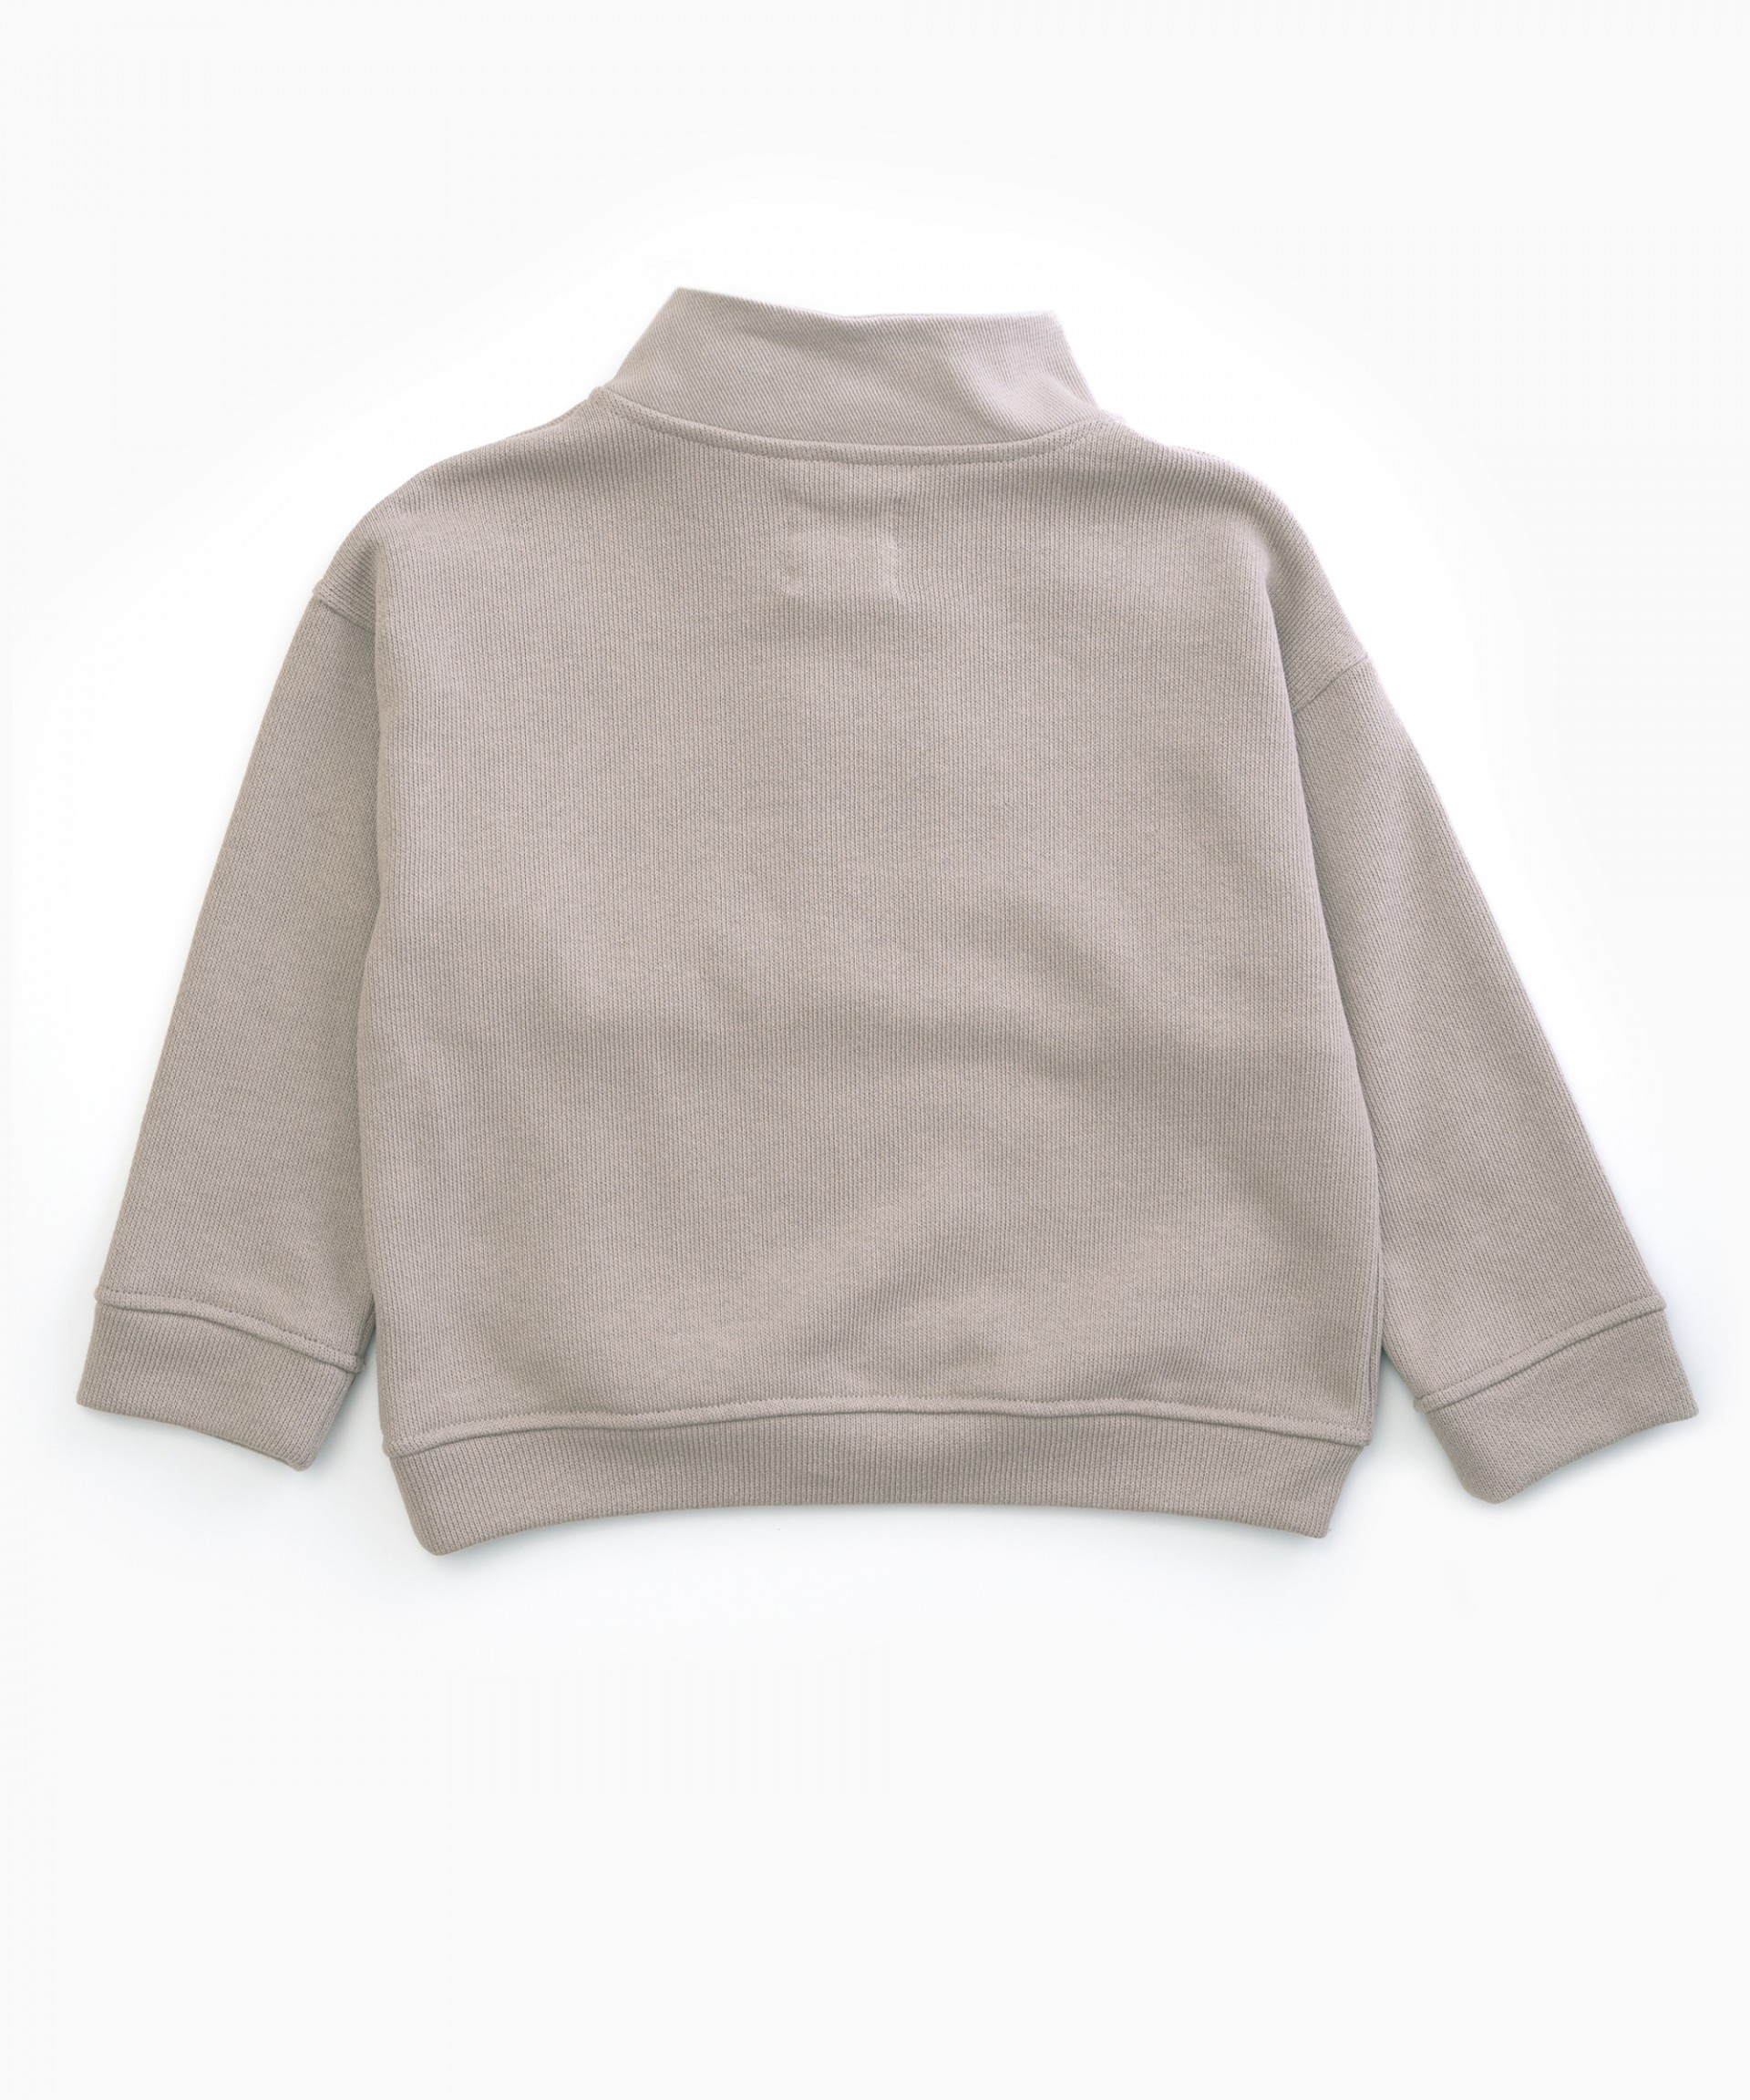 Sweater with a pocket | Woodwork